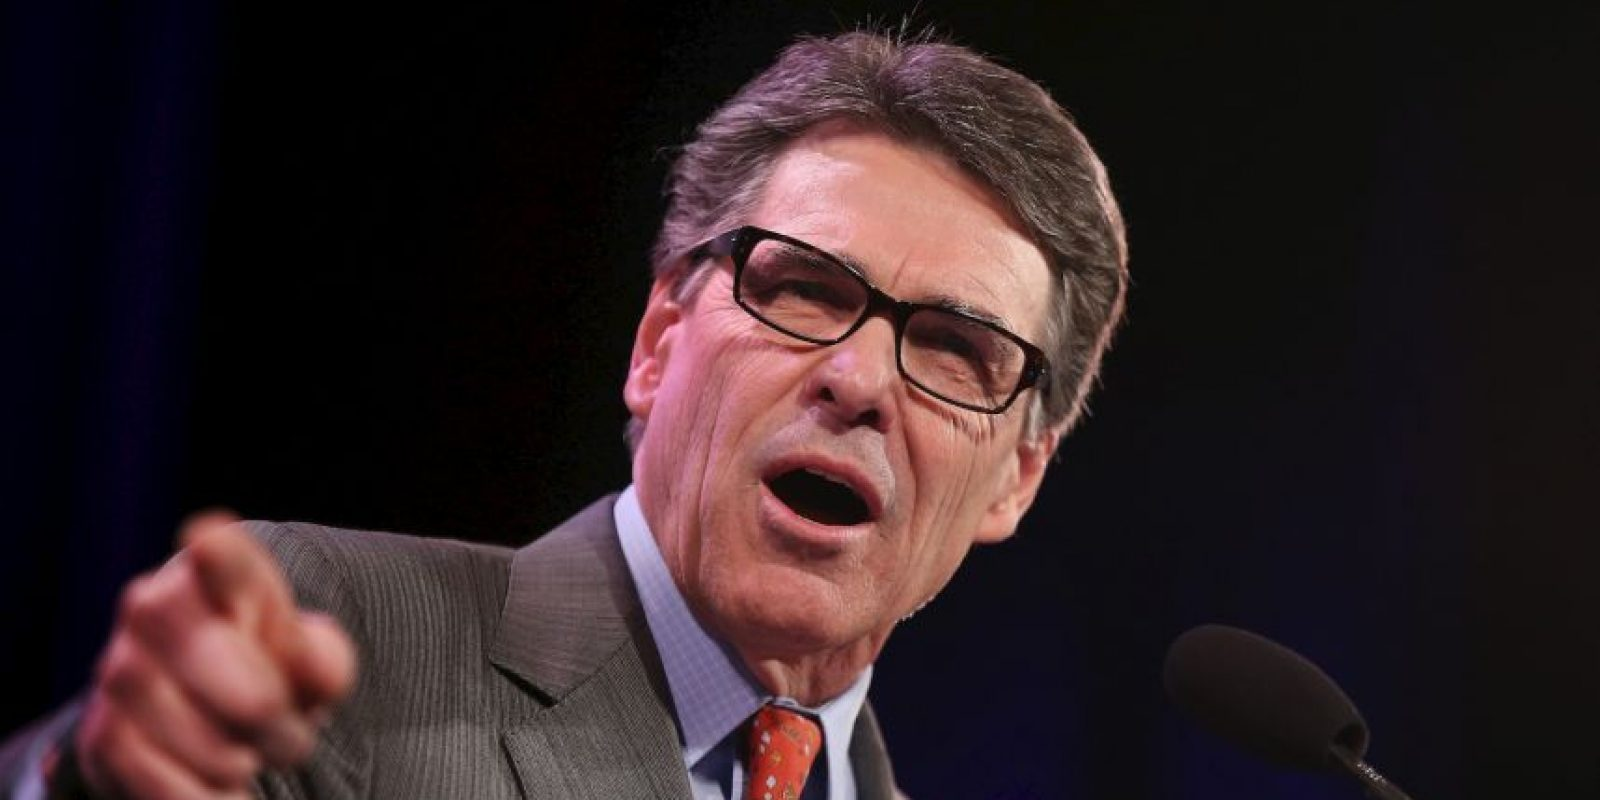 1. Rick Perry Foto: Getty Images